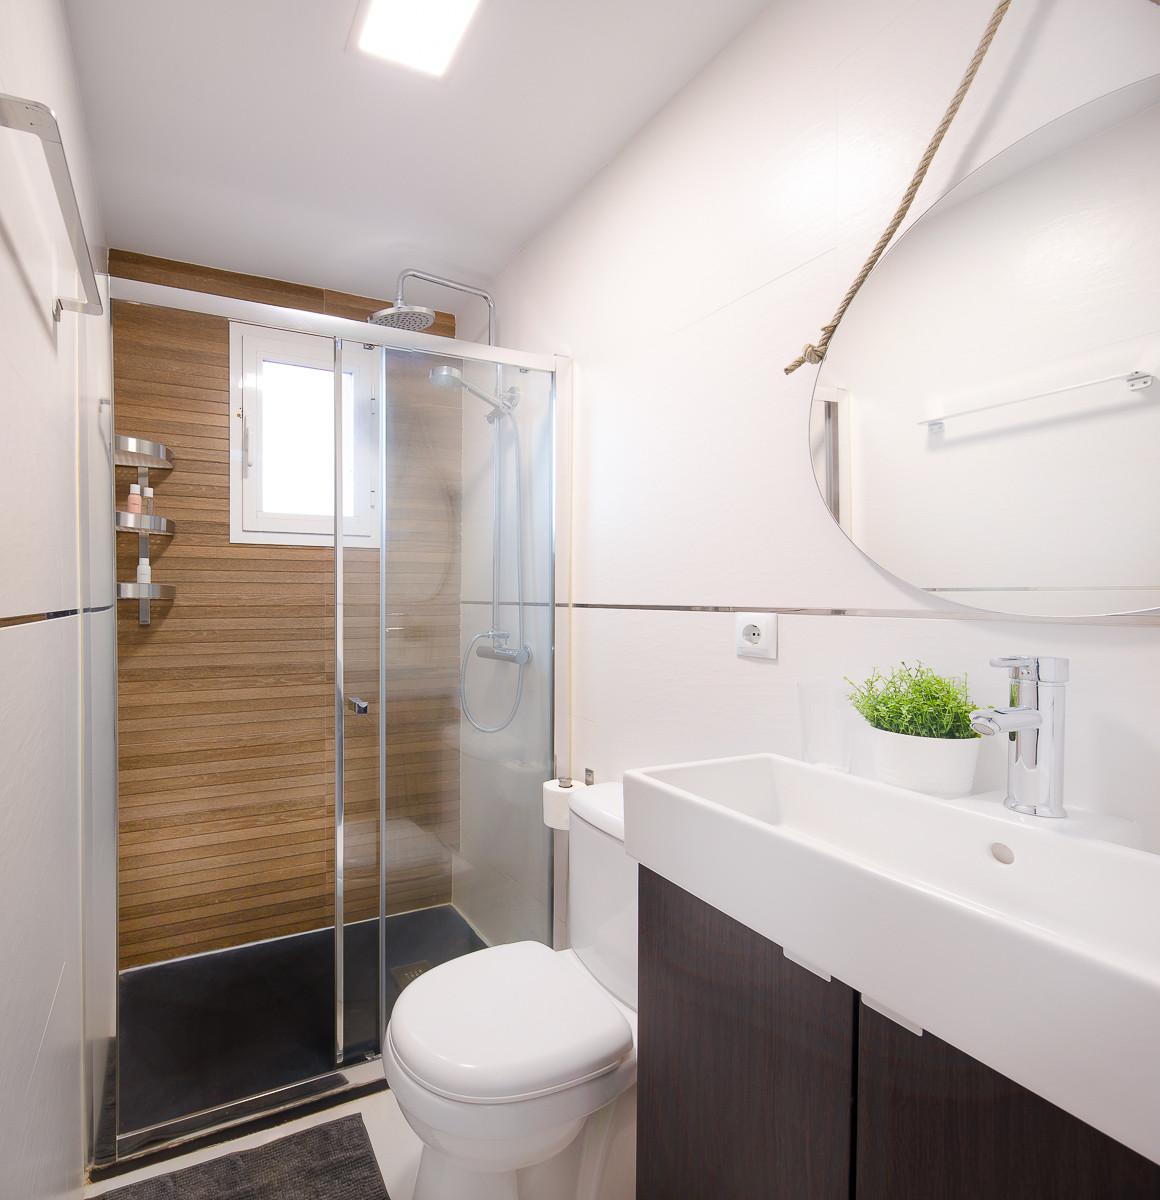 201904007 real estate photography_.jpg